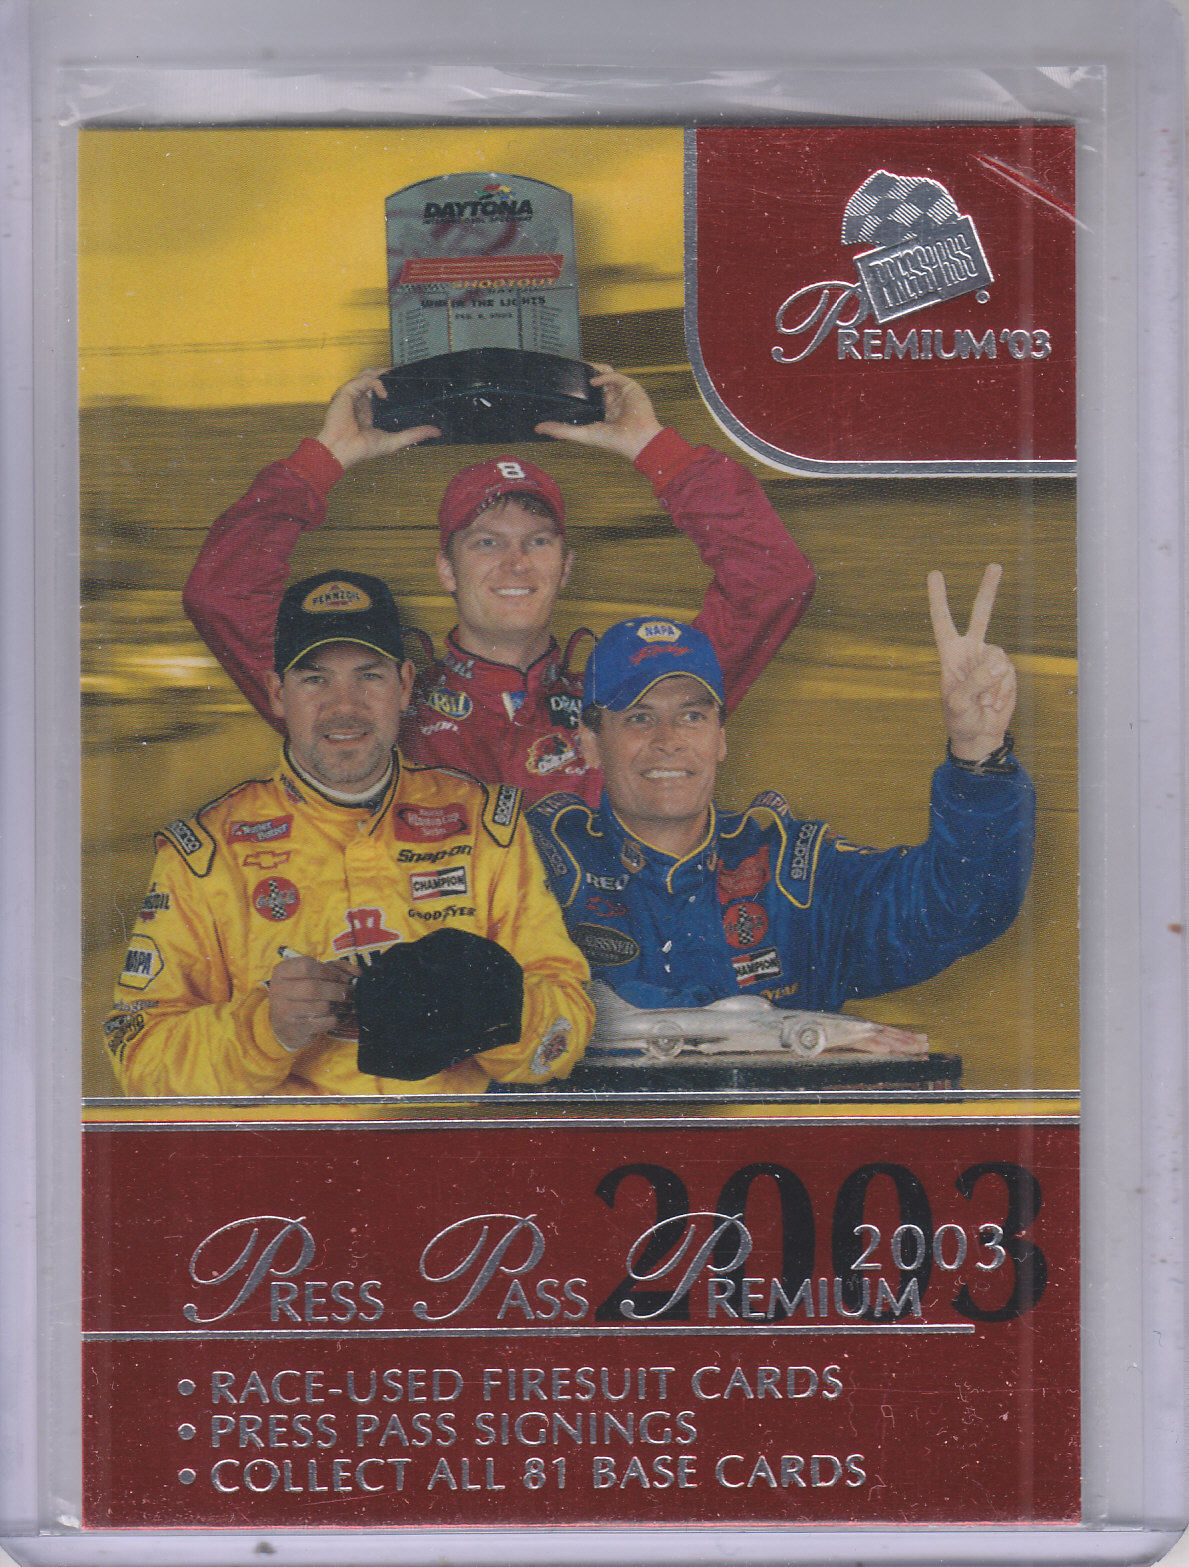 2003 Press Pass Premium Red Reflectors #50 Dale Jr./Park/Waltrip CL